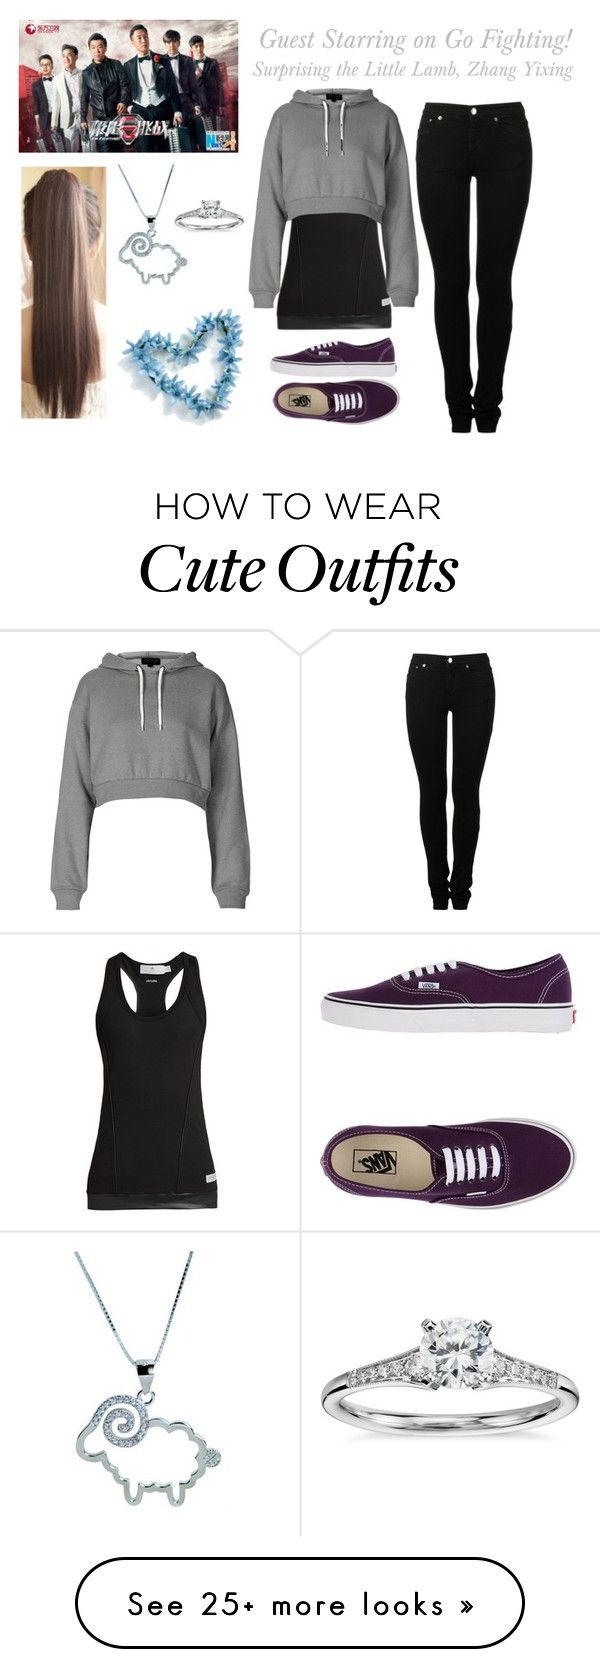 """""""My Heart is Never Not with You (Zhang Yixing Love Story) Outfit #1"""" by lola-twfanmily on Polyvore featuring MM6 Maison Margiela, adidas, Blue Nile, Topshop, Vans and Metal Mixology"""